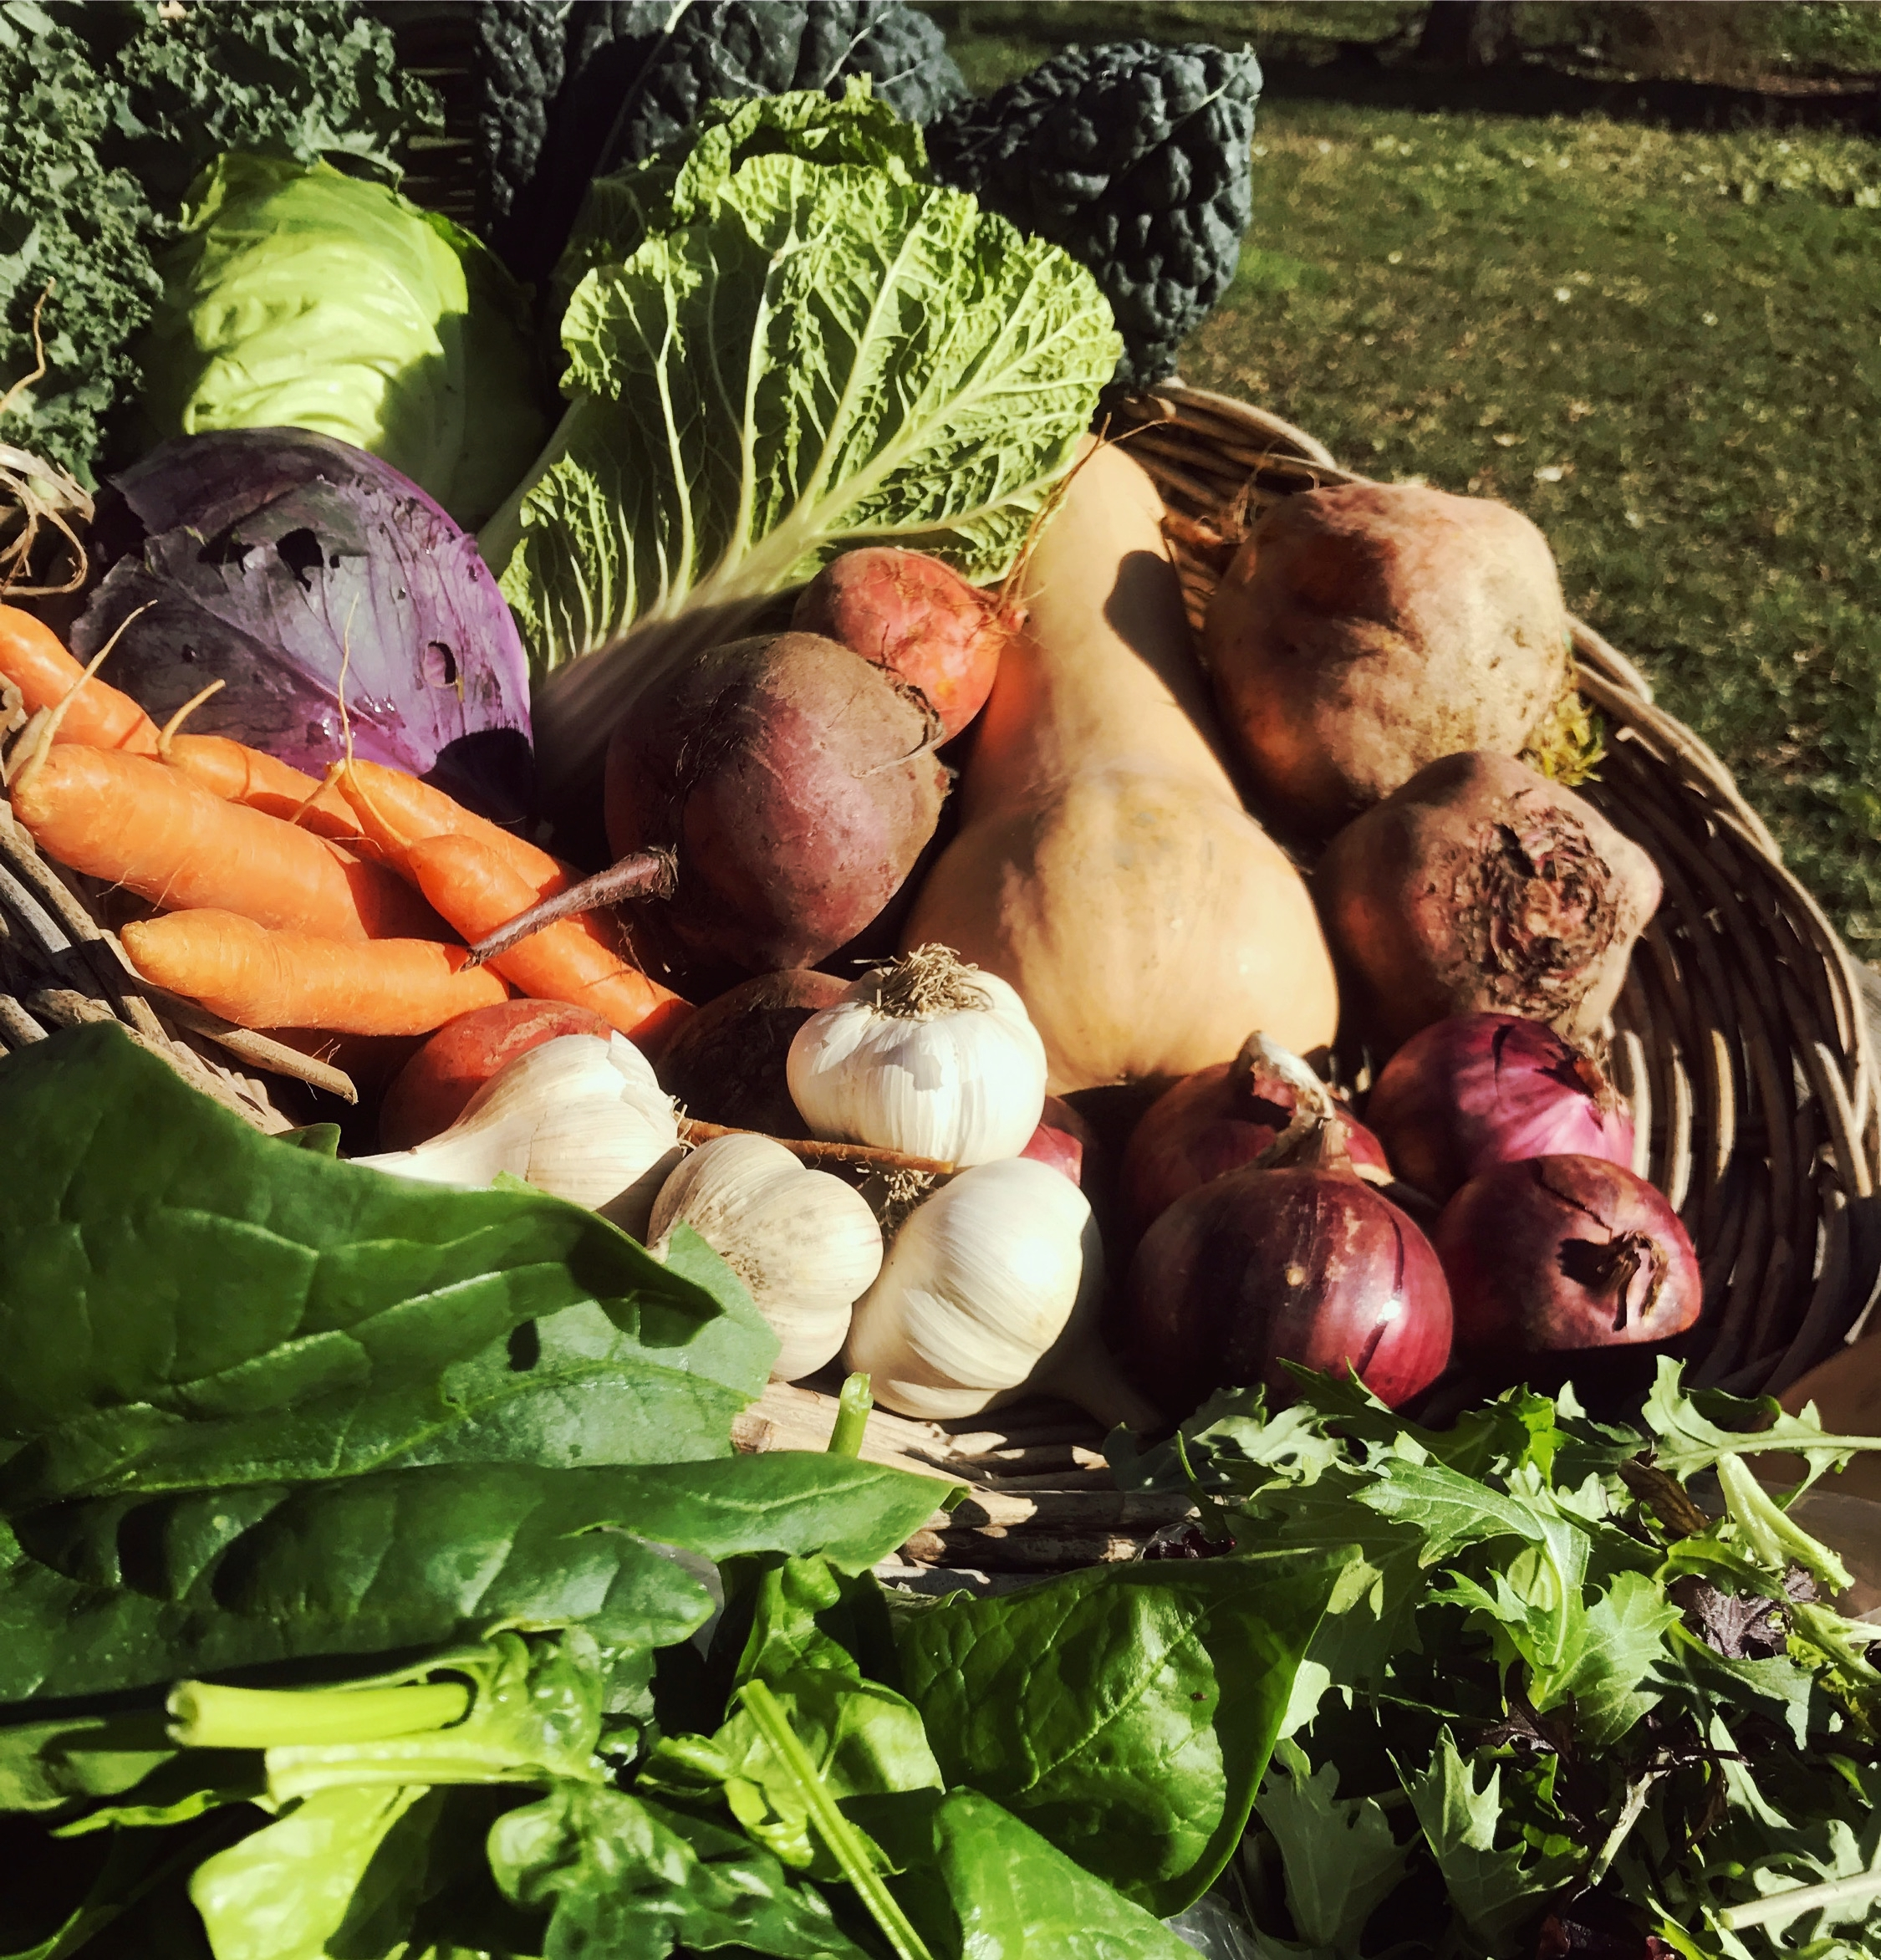 A typical fall share!  Beets, onions, squashes and more!